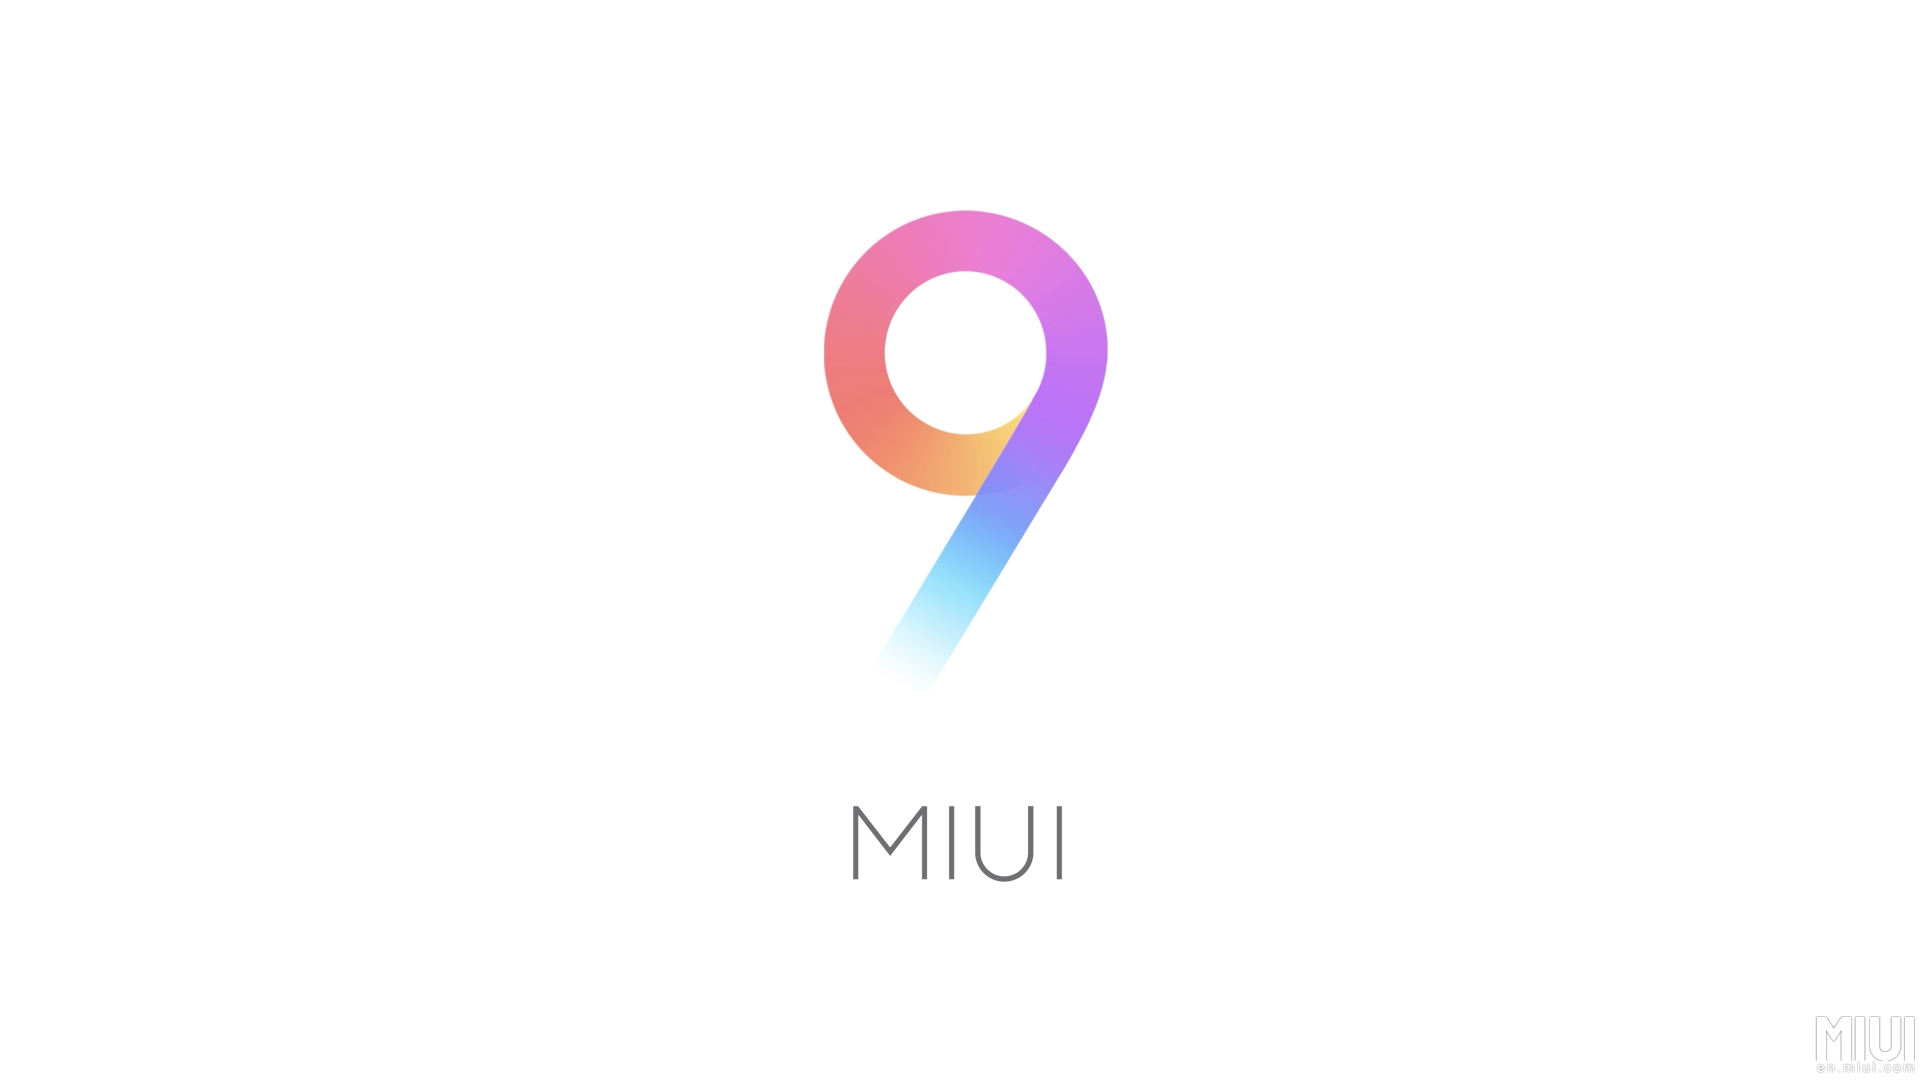 Beta Global de MIUI 9 ROM 7.8.24: Lista de cambios